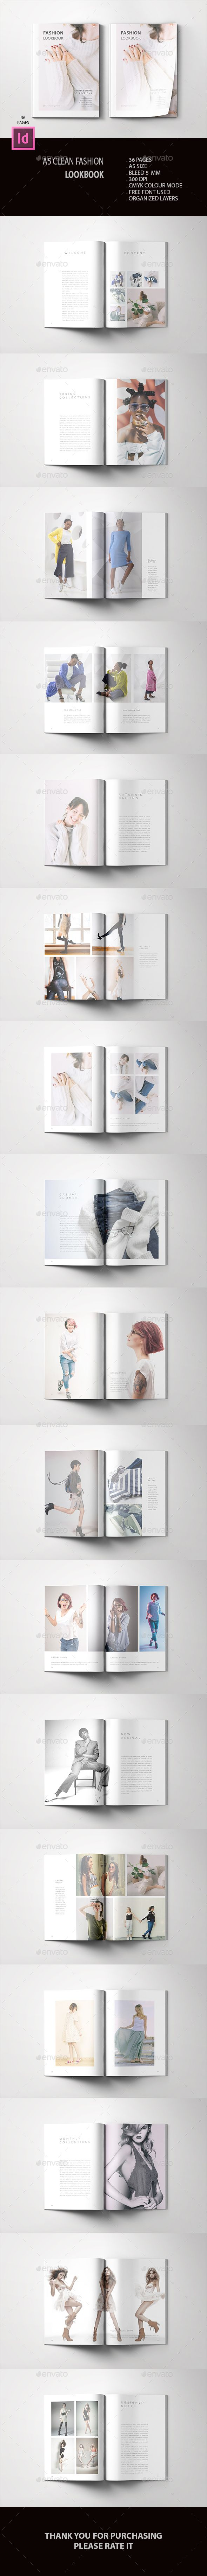 a5 clean fashion lookbook design template indesign indd 36 pages